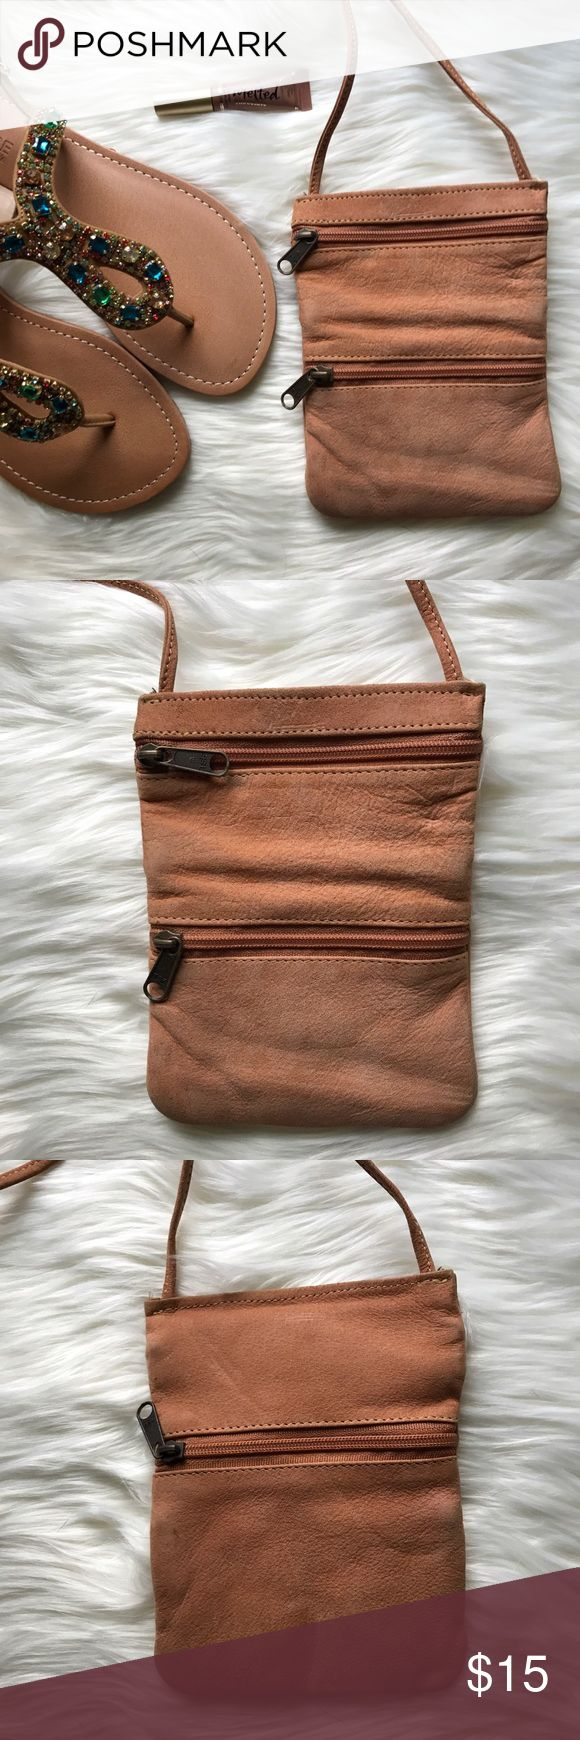 💫 SALE 💫 Emily Ann - Leather - Made in India Emily Ann of Boca Raton Brown/Tan Genuine Leather Crossbody Pouch. Vintage bag, two zippers on the front and one on the back. This bag goes has a worm feel to it. Perfect for the summer! Emily Ann Bags Crossbody Bags